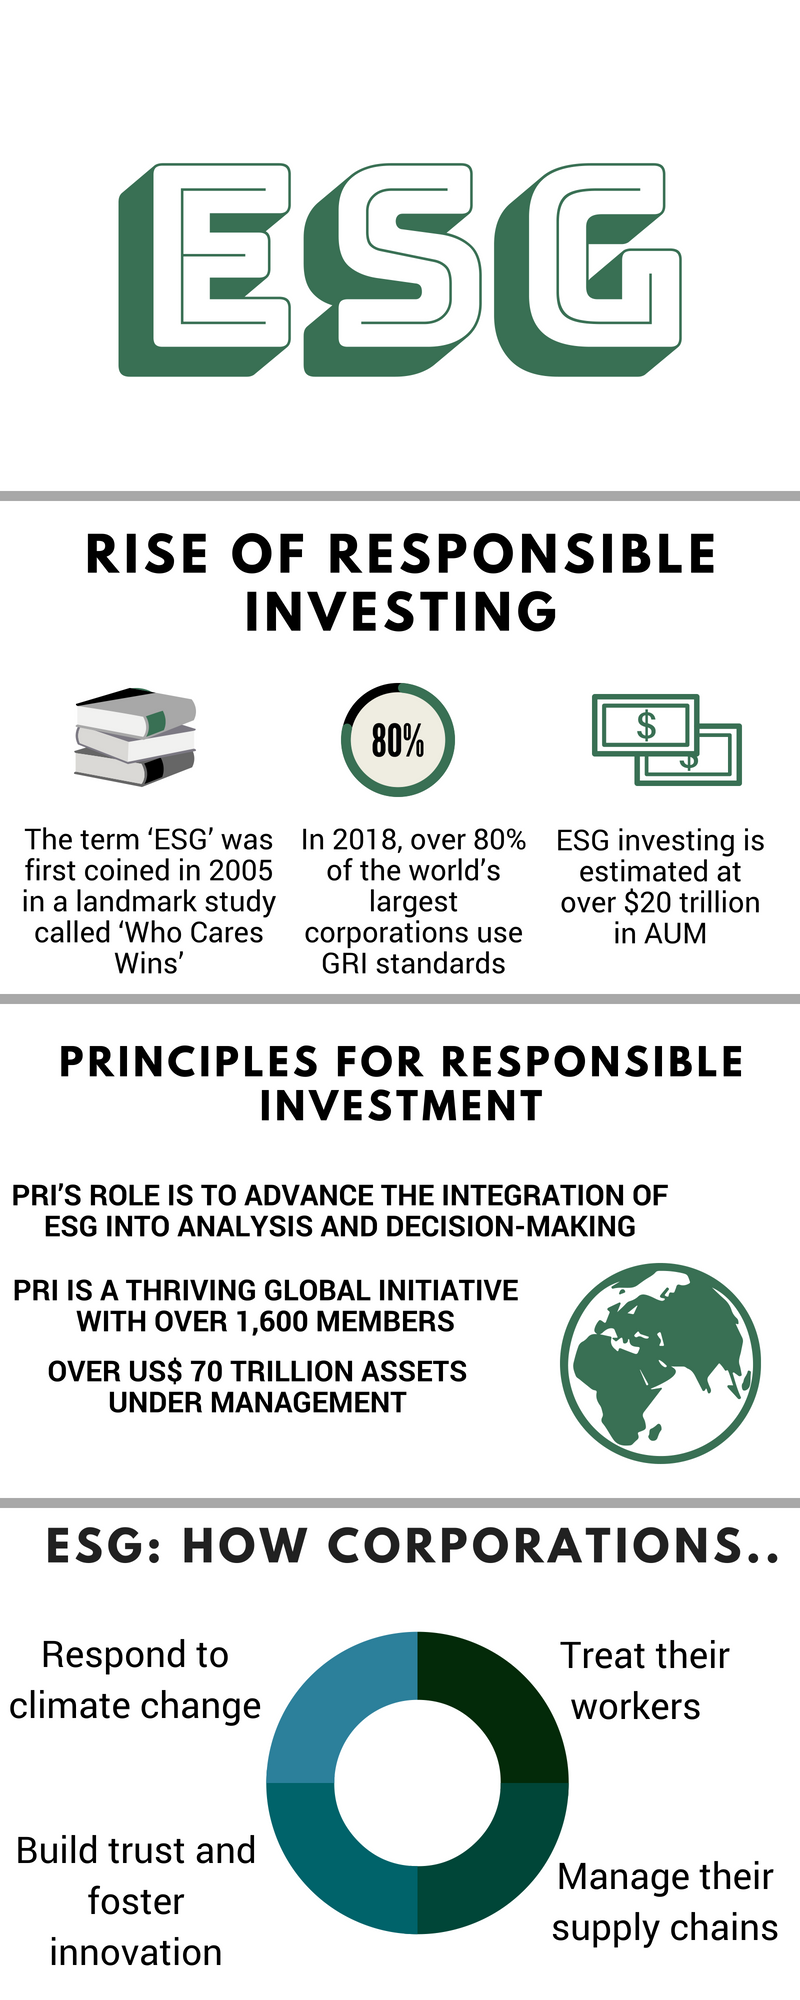 ESG Investing has developed rapidly over the past decadeARABESQUE